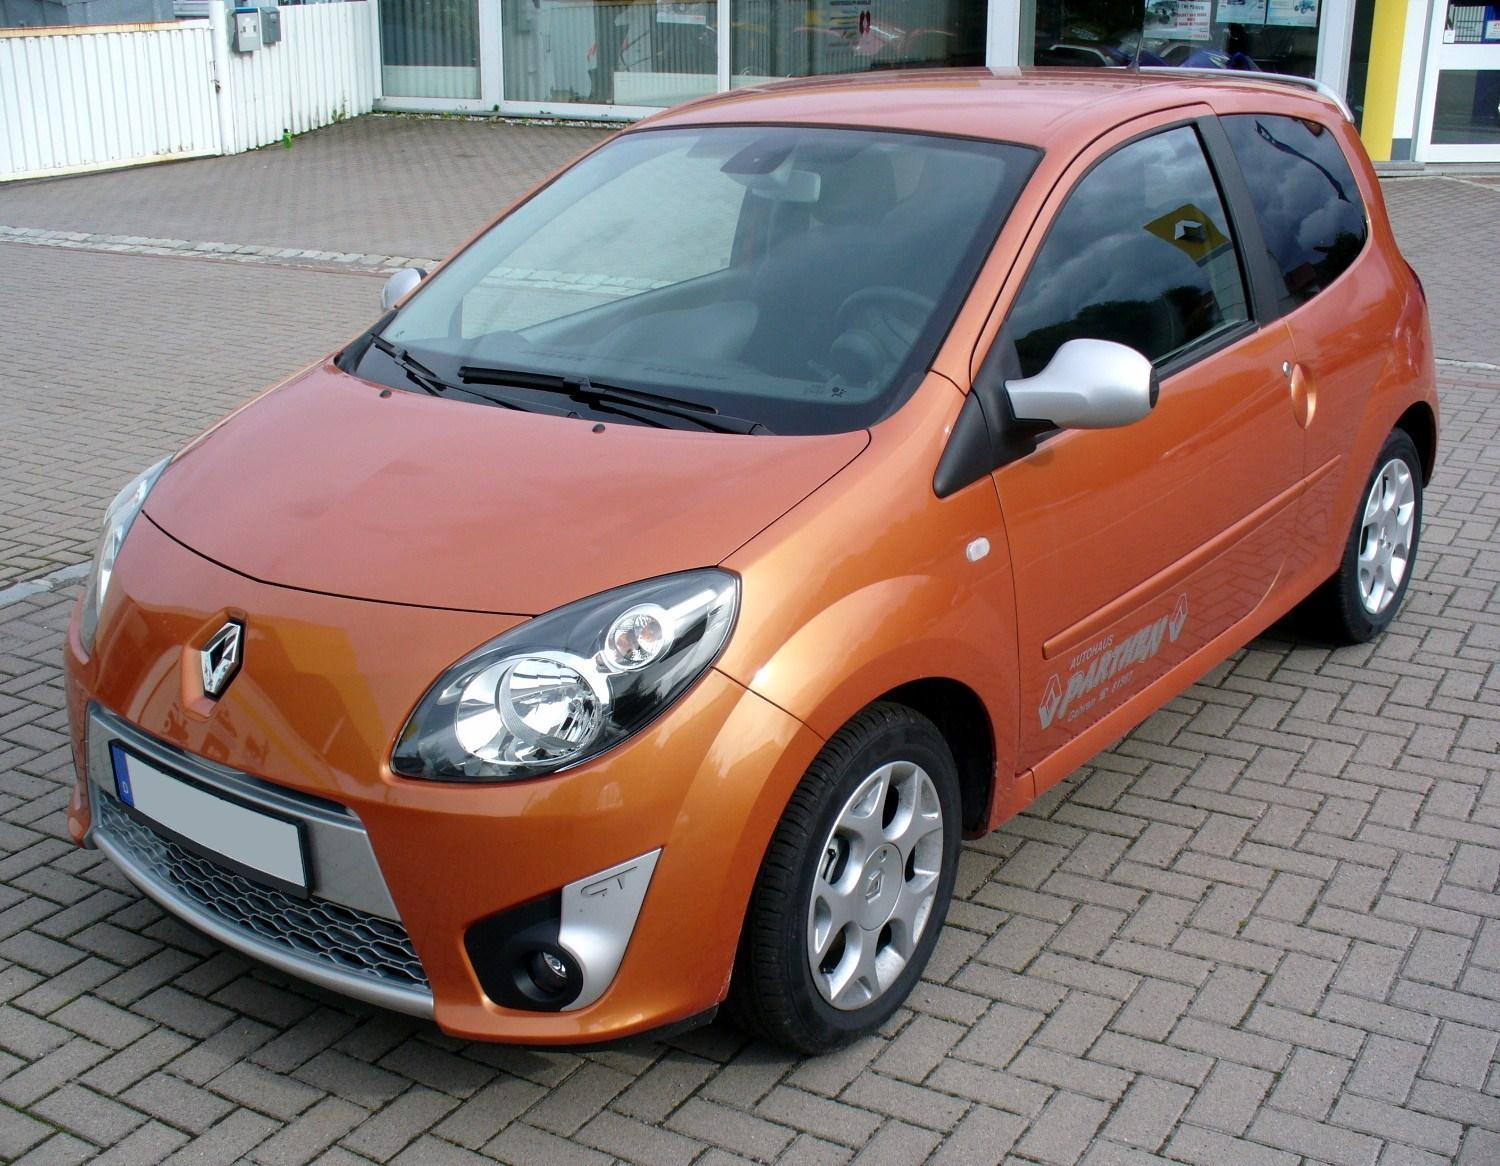 file renault twingo ii phse i gt funken orange jpg wikimedia commons. Black Bedroom Furniture Sets. Home Design Ideas